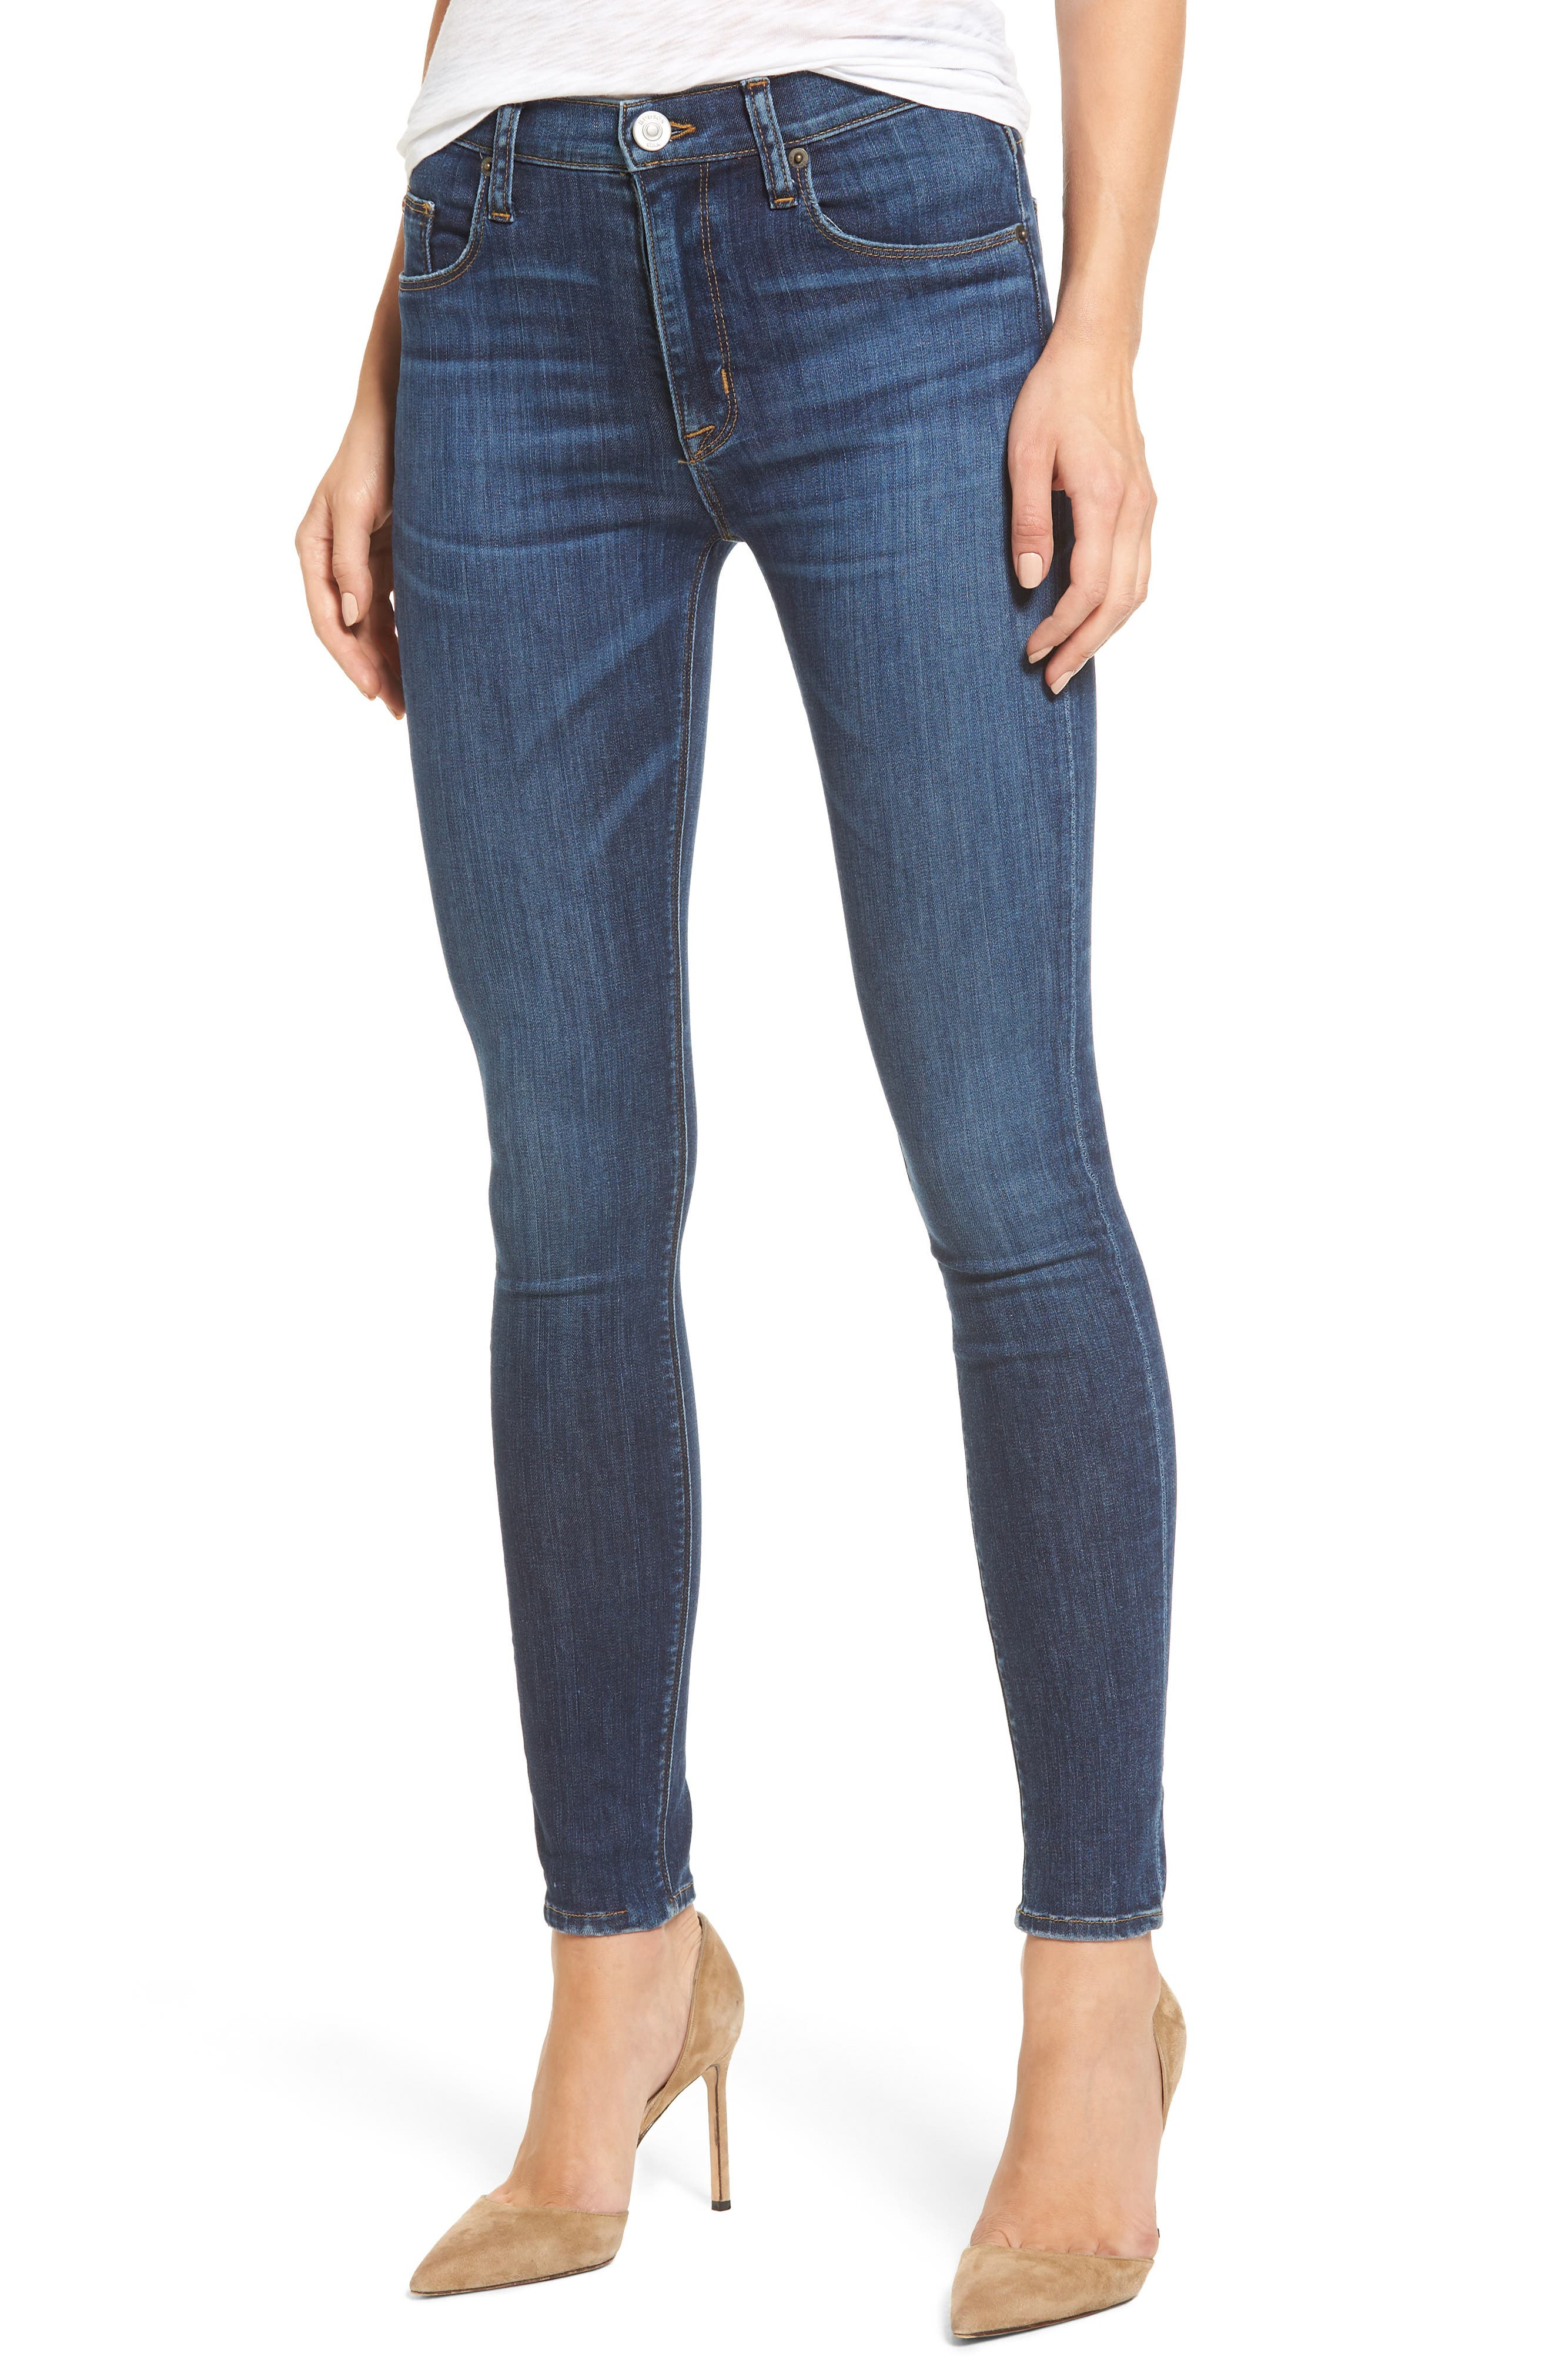 'Barbara' High Rise Super Skinny Jeans,                             Main thumbnail 1, color,                             401